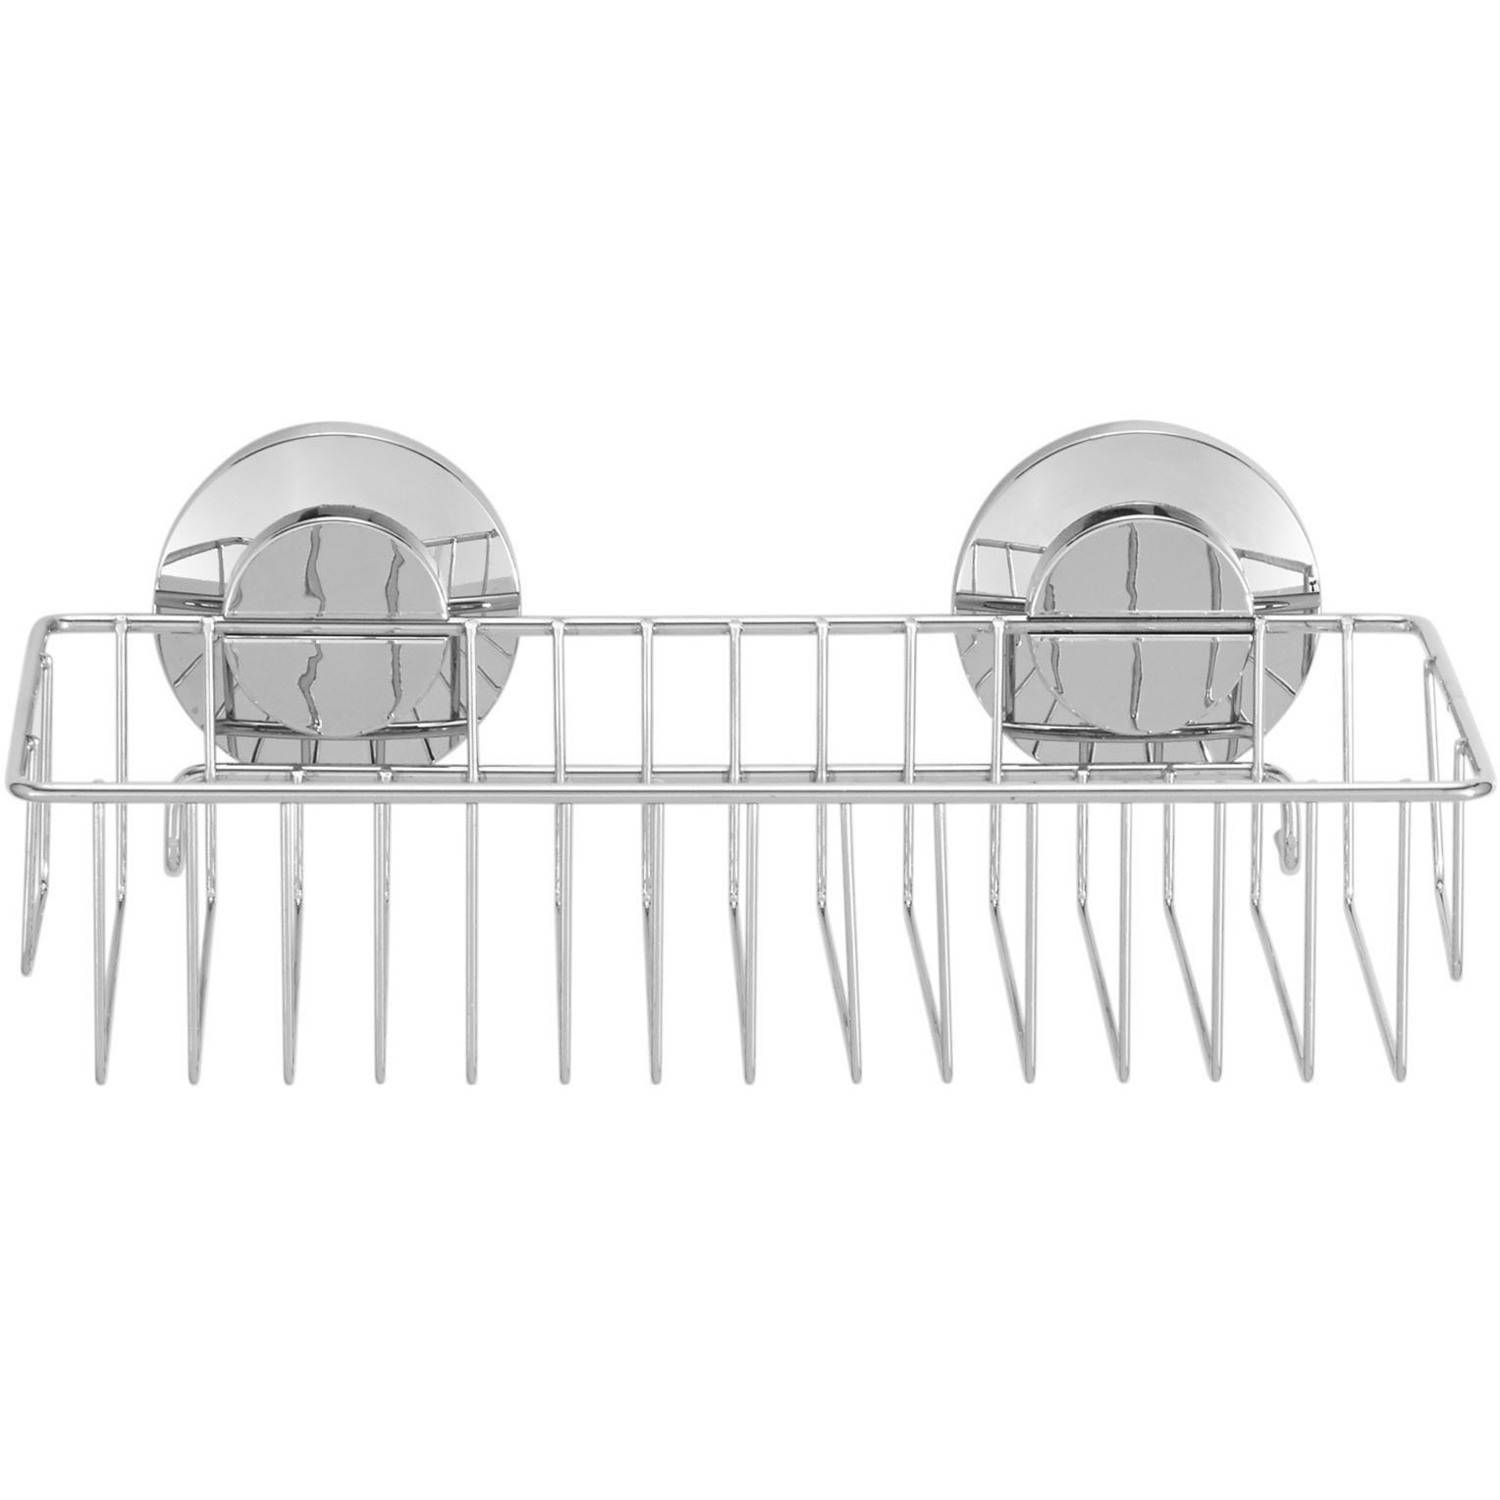 Everloc Push N' Loc Sucition Cup Shower Caddy Chrome with Chrome Cover by Generic